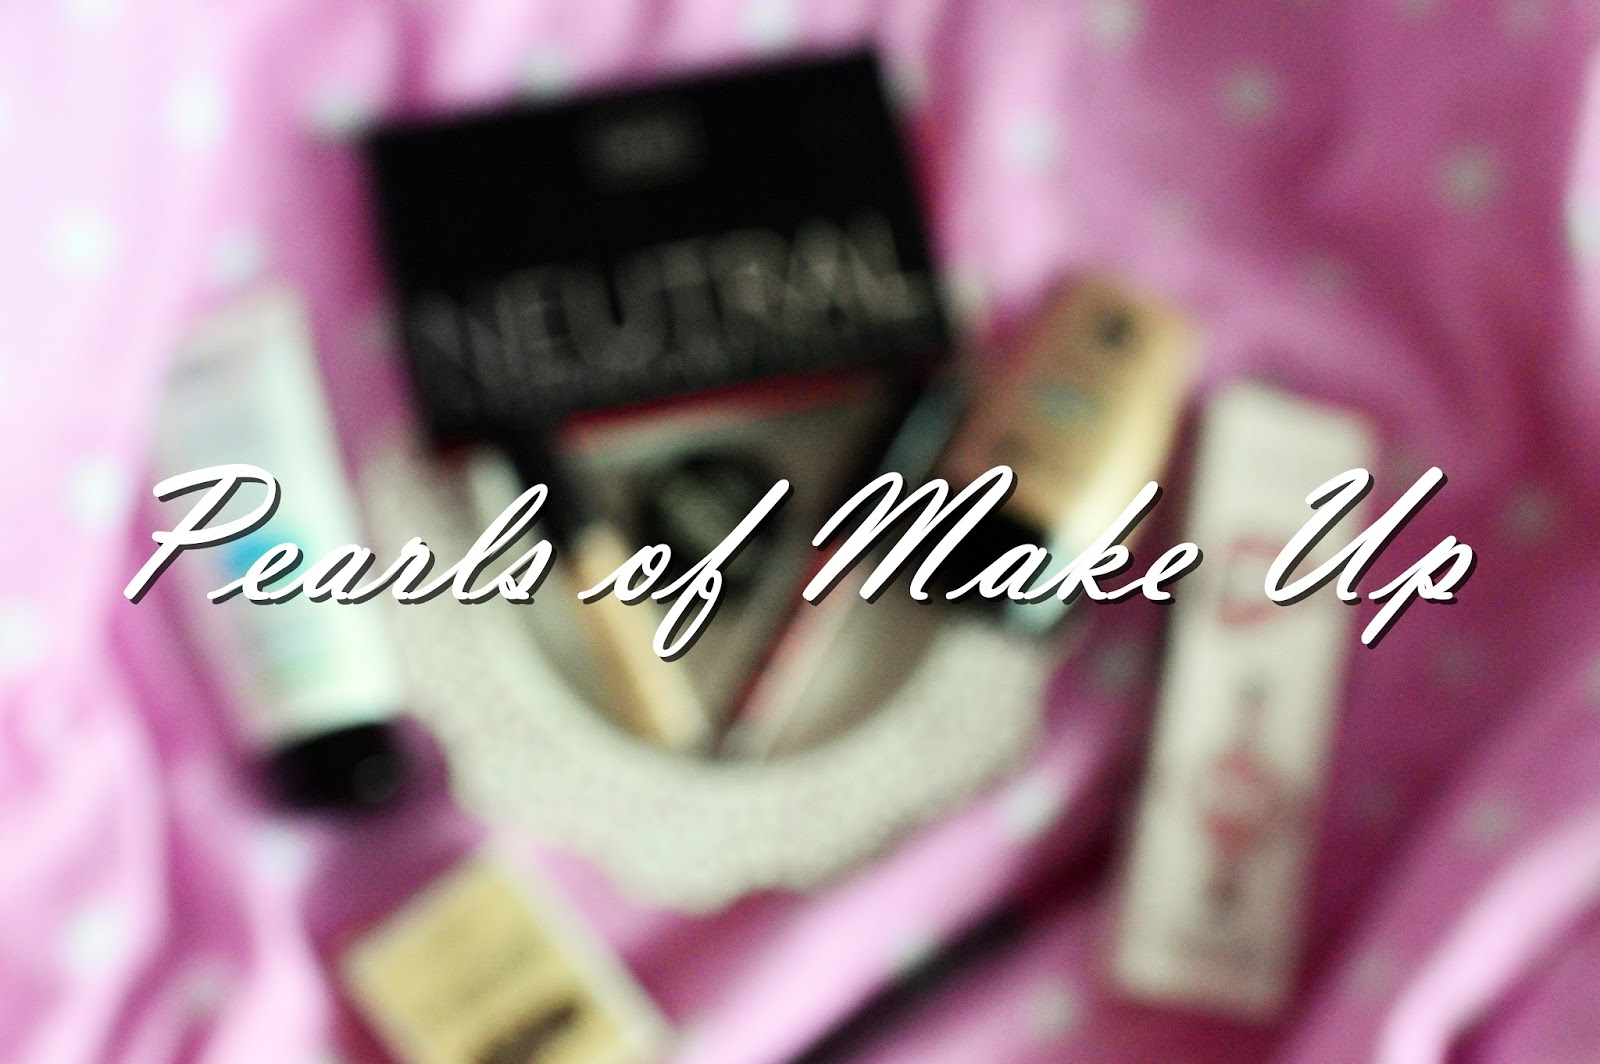 Pearls of make up - Dear Diary by W.Komenda